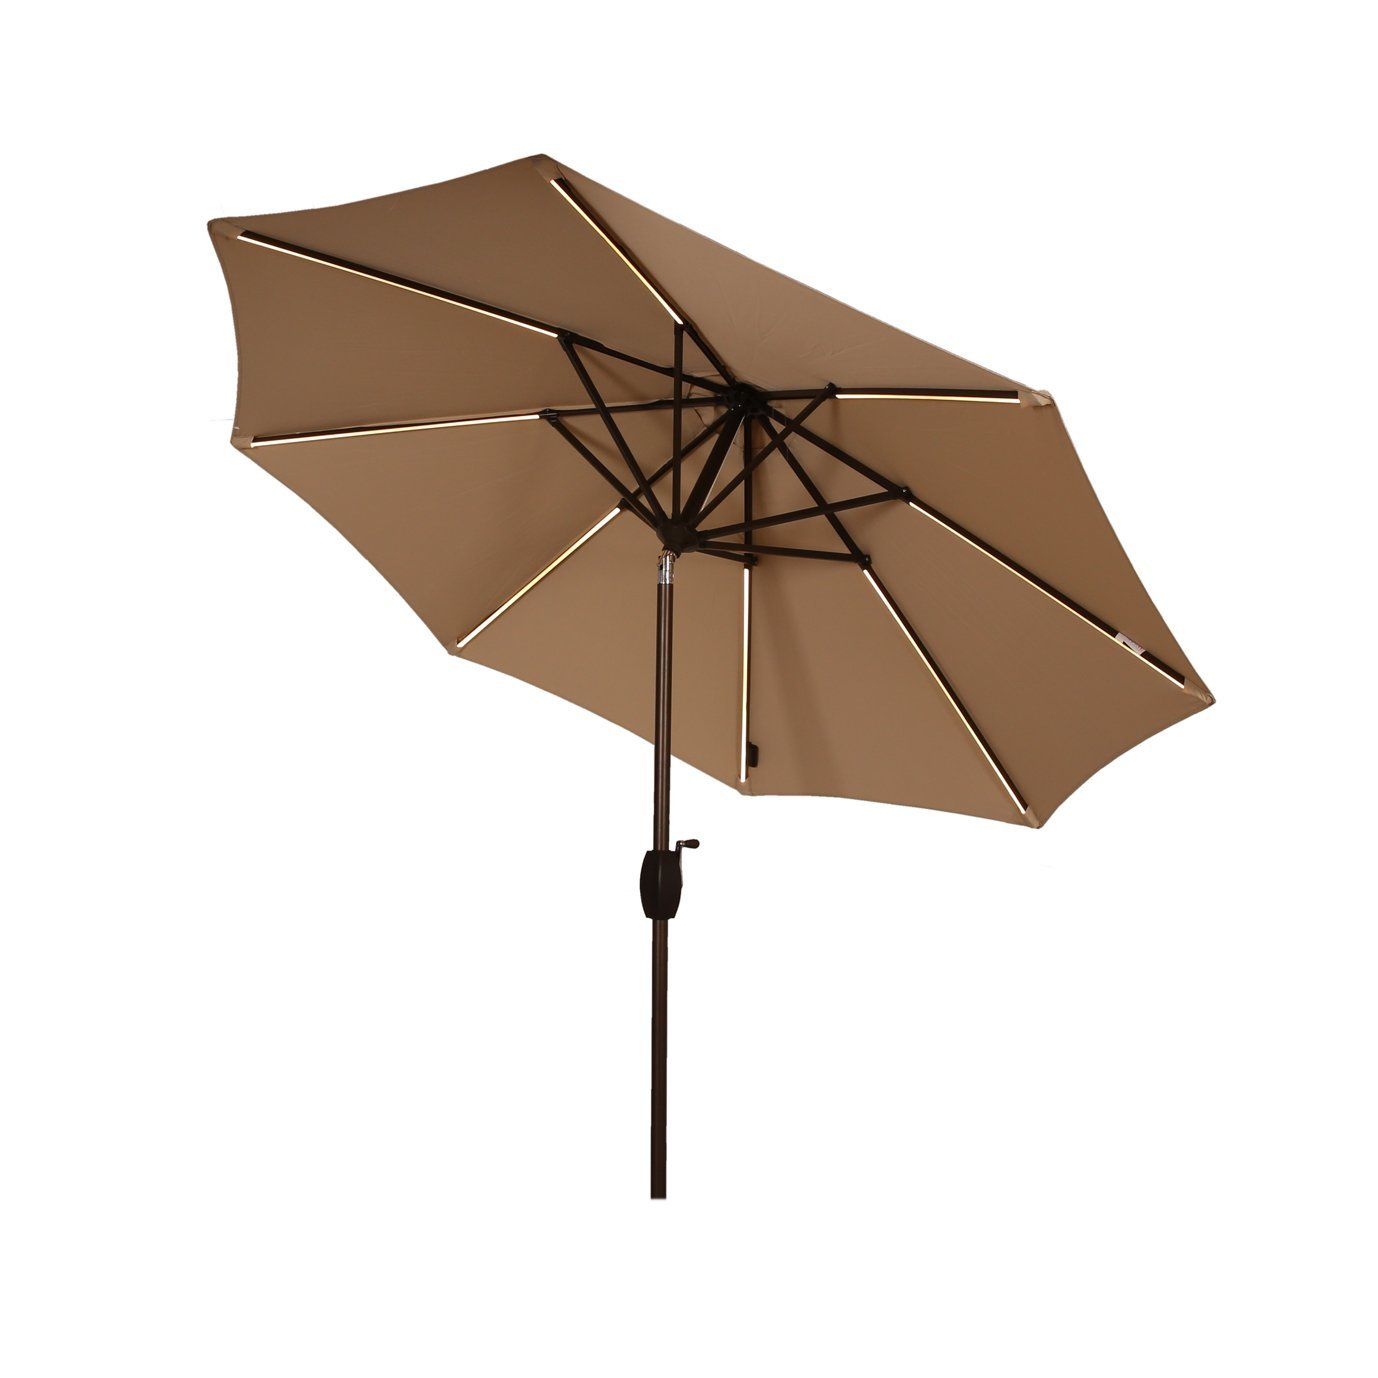 Ulax Furniture 9 Ft Solar Powered LED Lights Patio Umbrella Aluminum Outdoor Market Umbrella with Tilt and Crank system, Air Vent, 100% Polyester, Beige